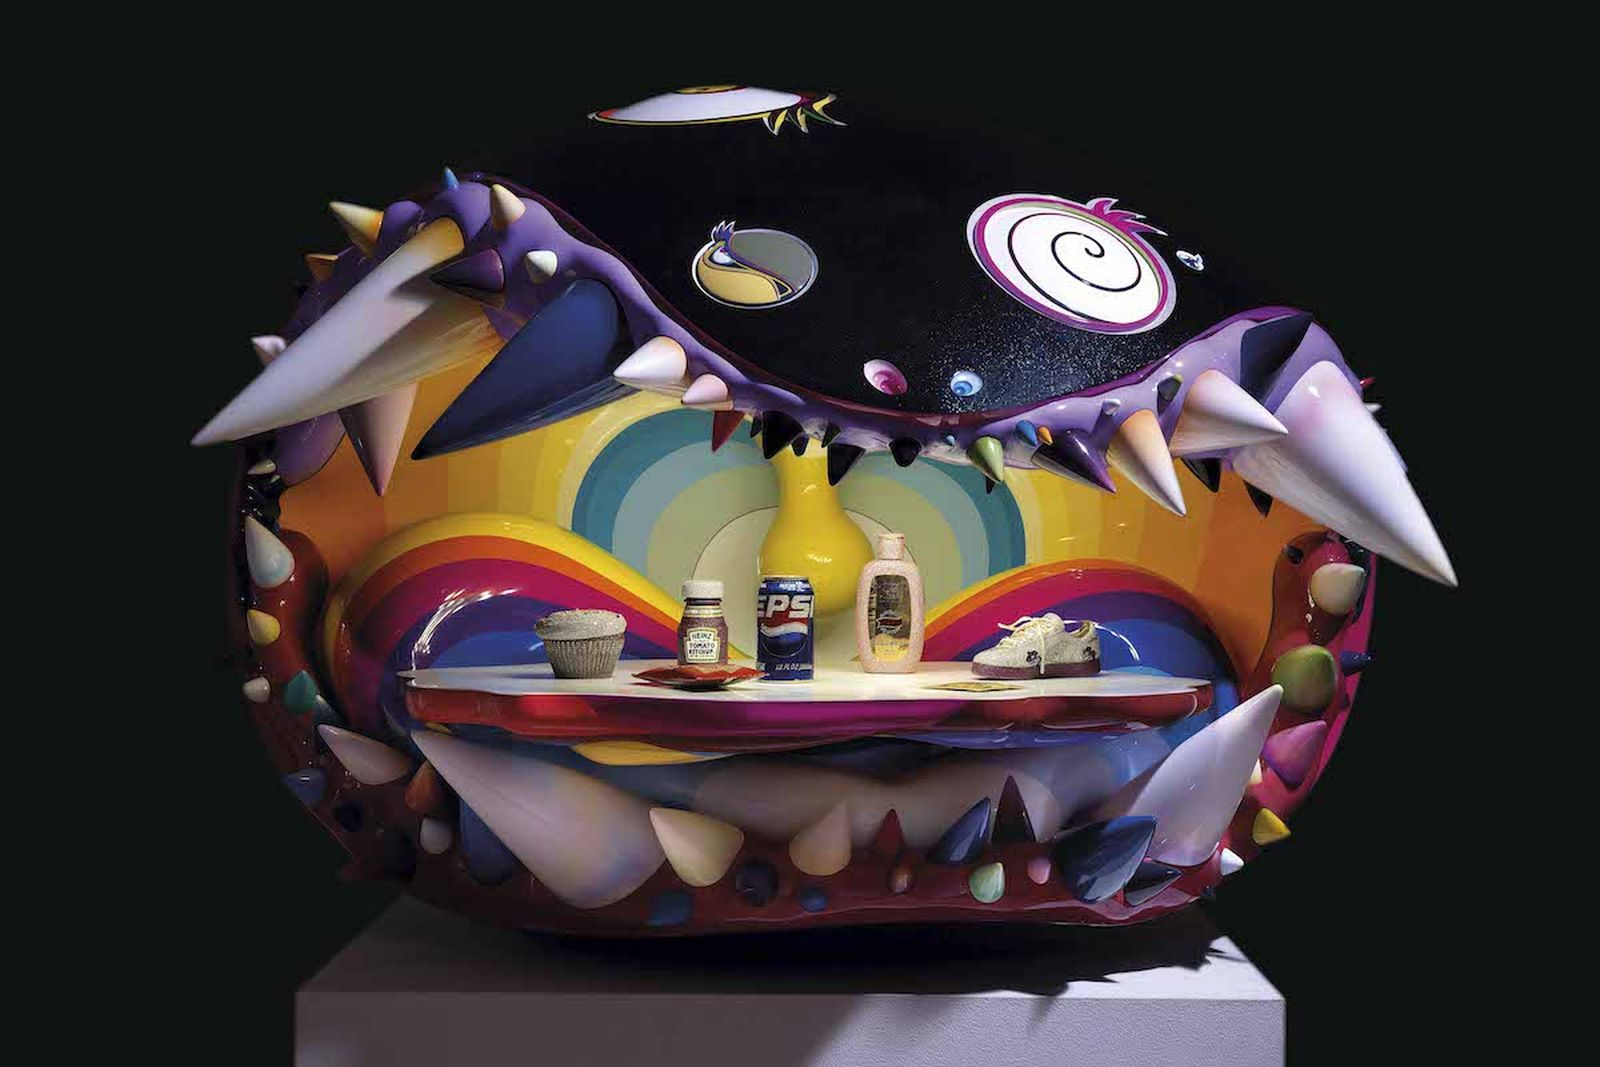 Takashi Murakami Pharrell Williams Sculpture